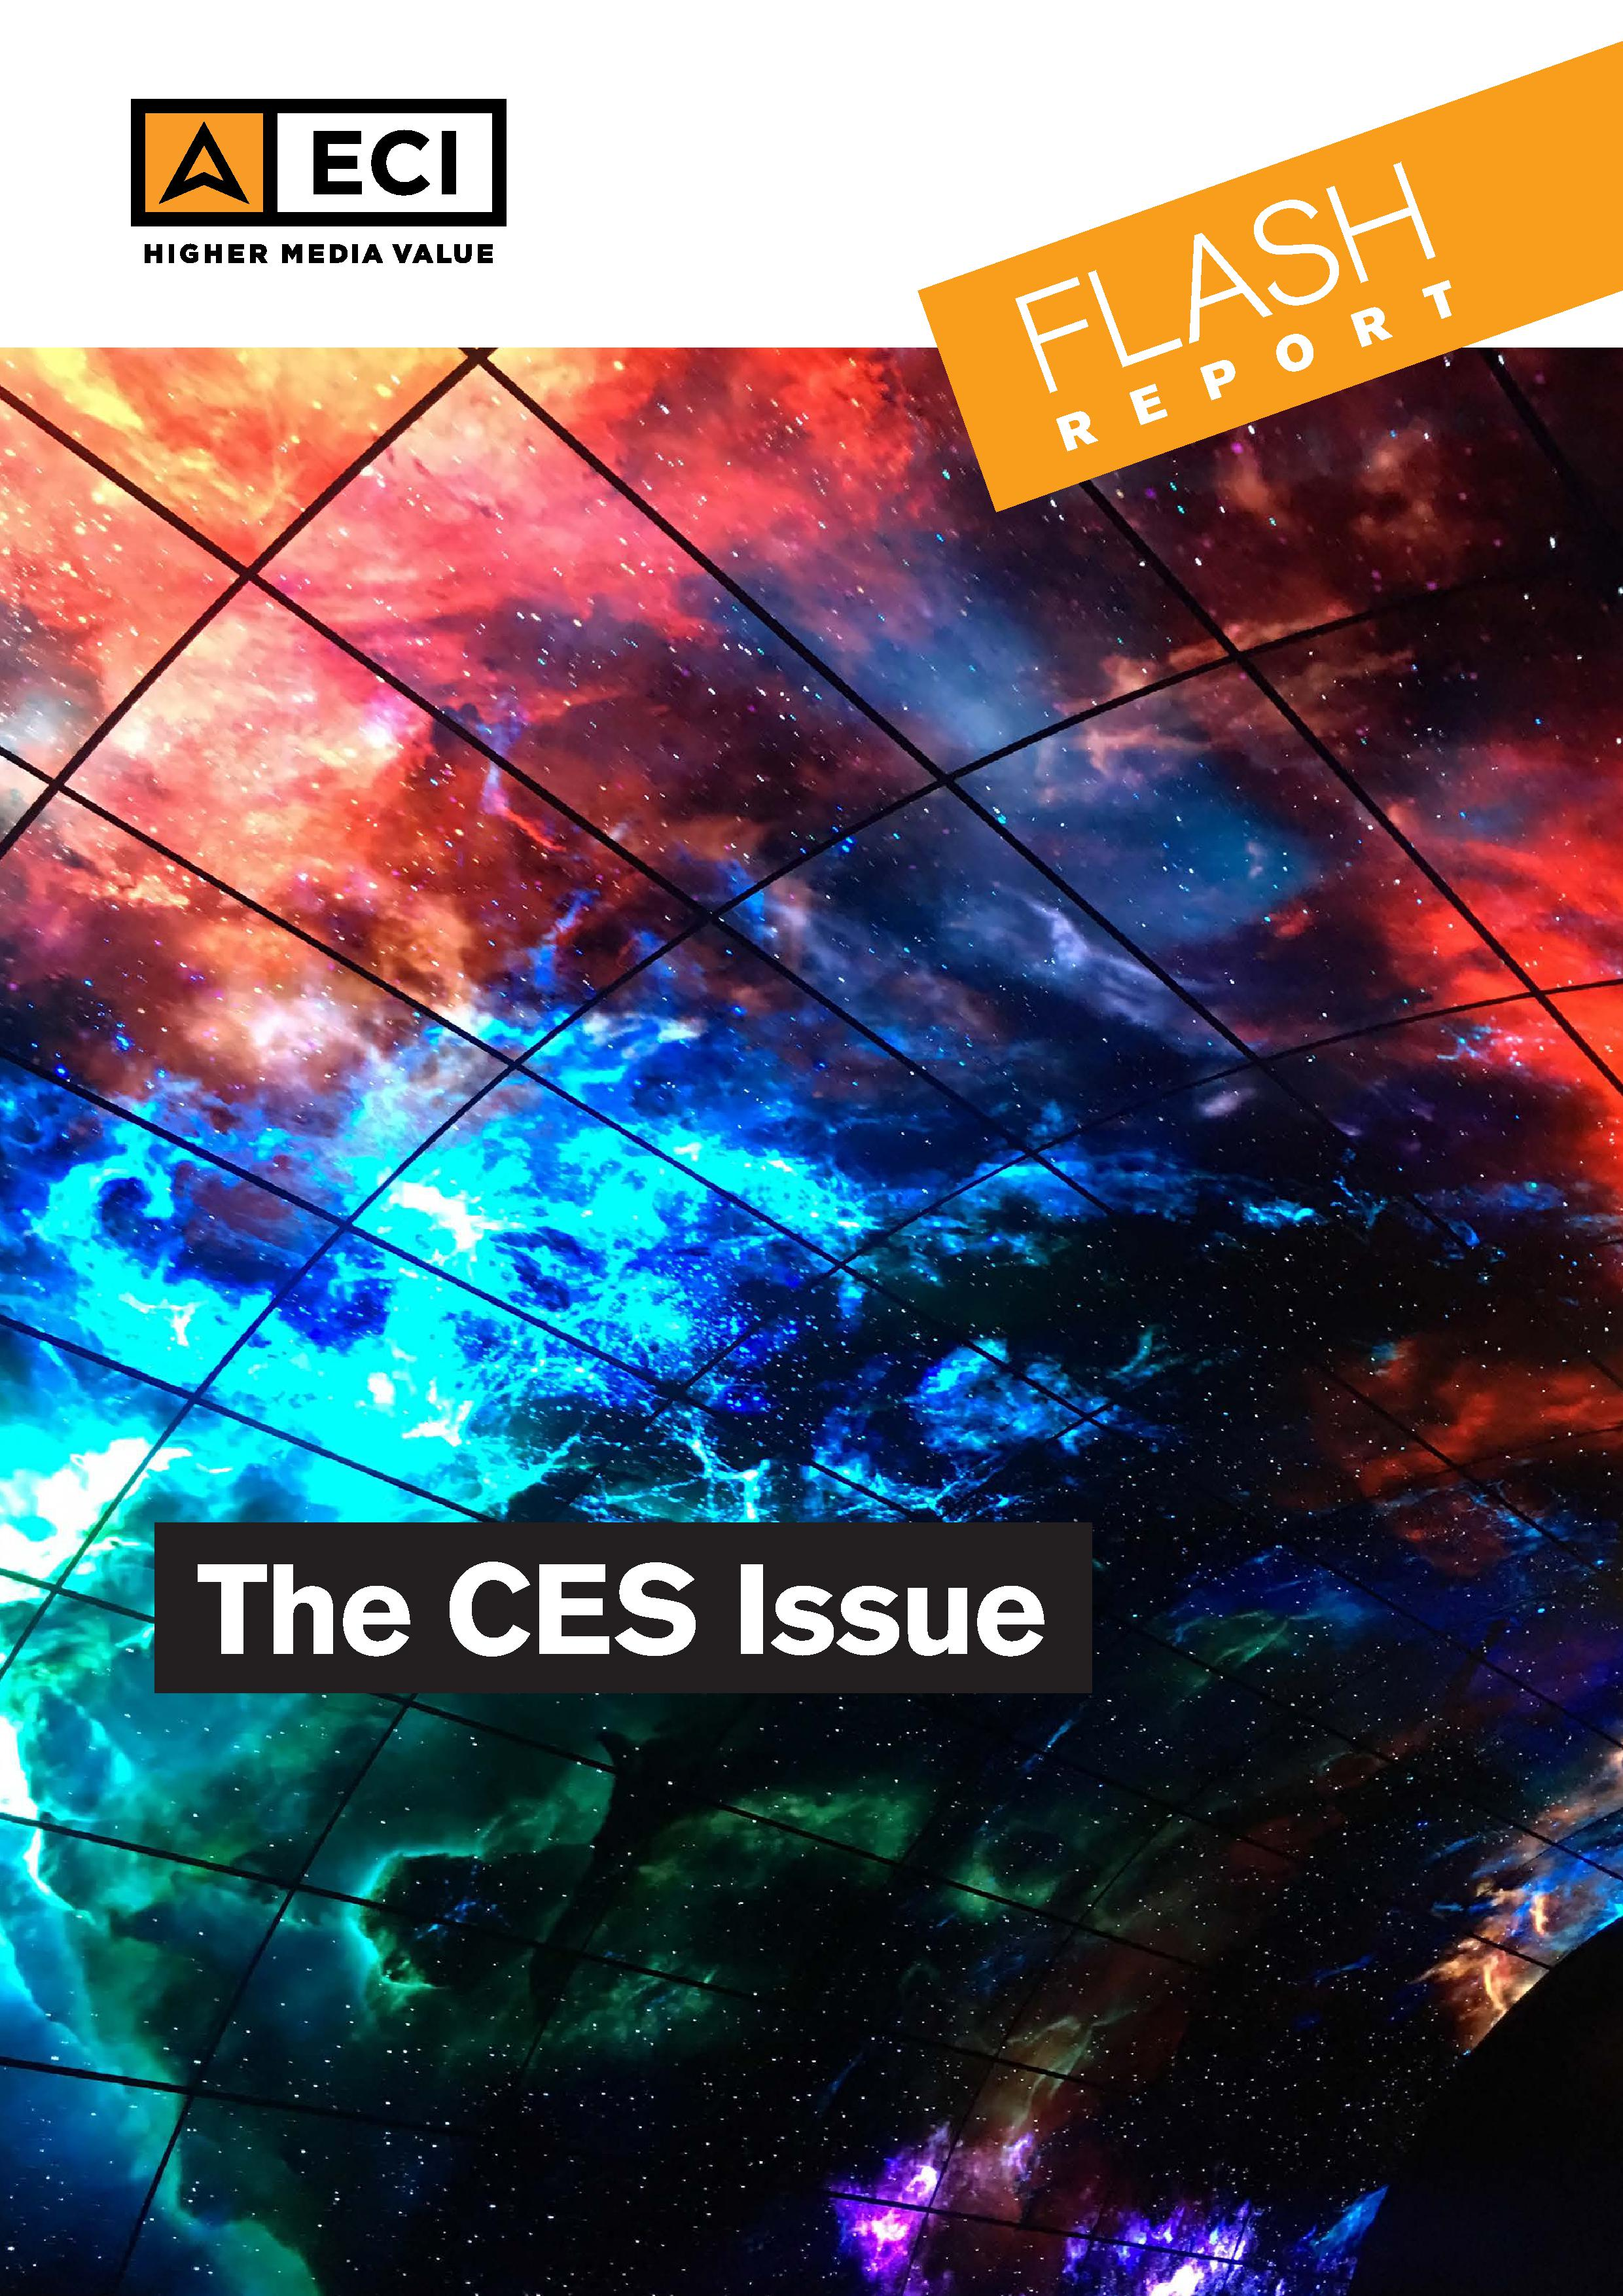 eci_report_ces_issue_jan_2017001